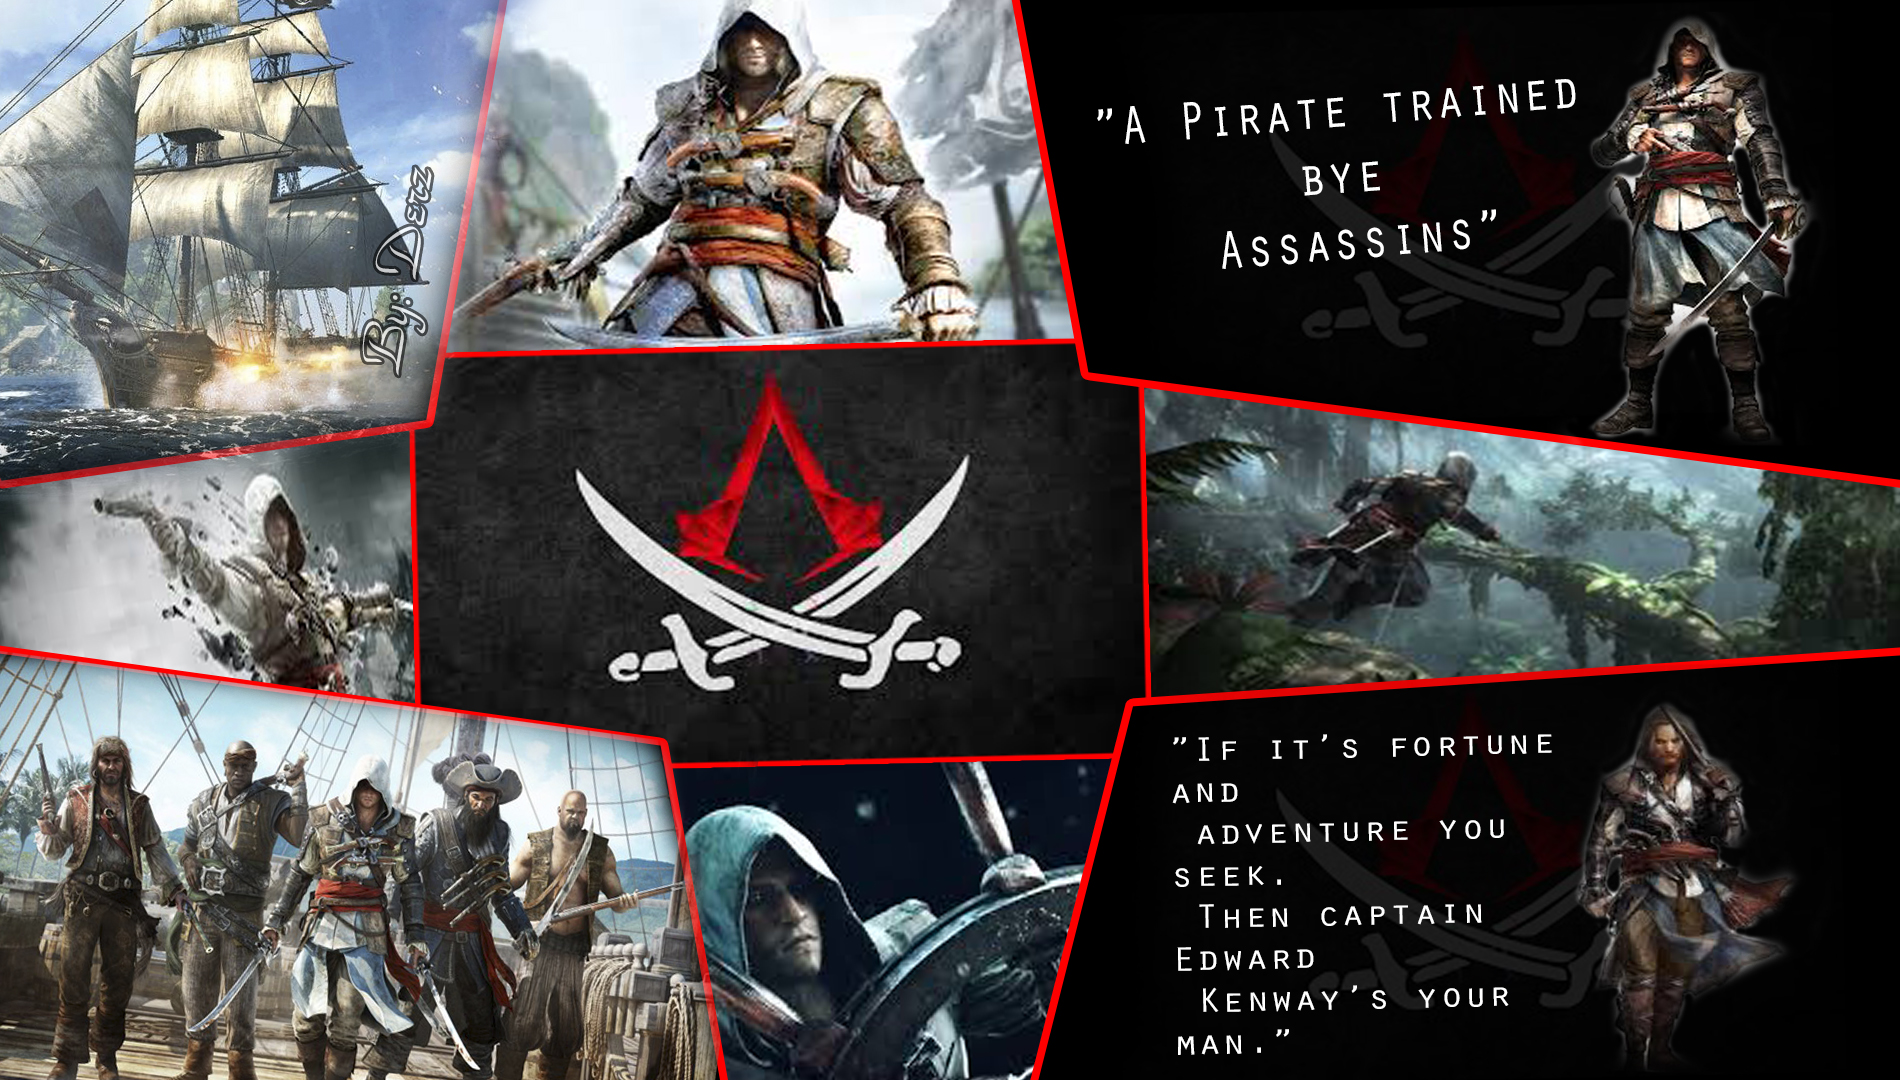 Assassin S Creed Iv Blackflag Fan Art Assassin S Creed Fan Art